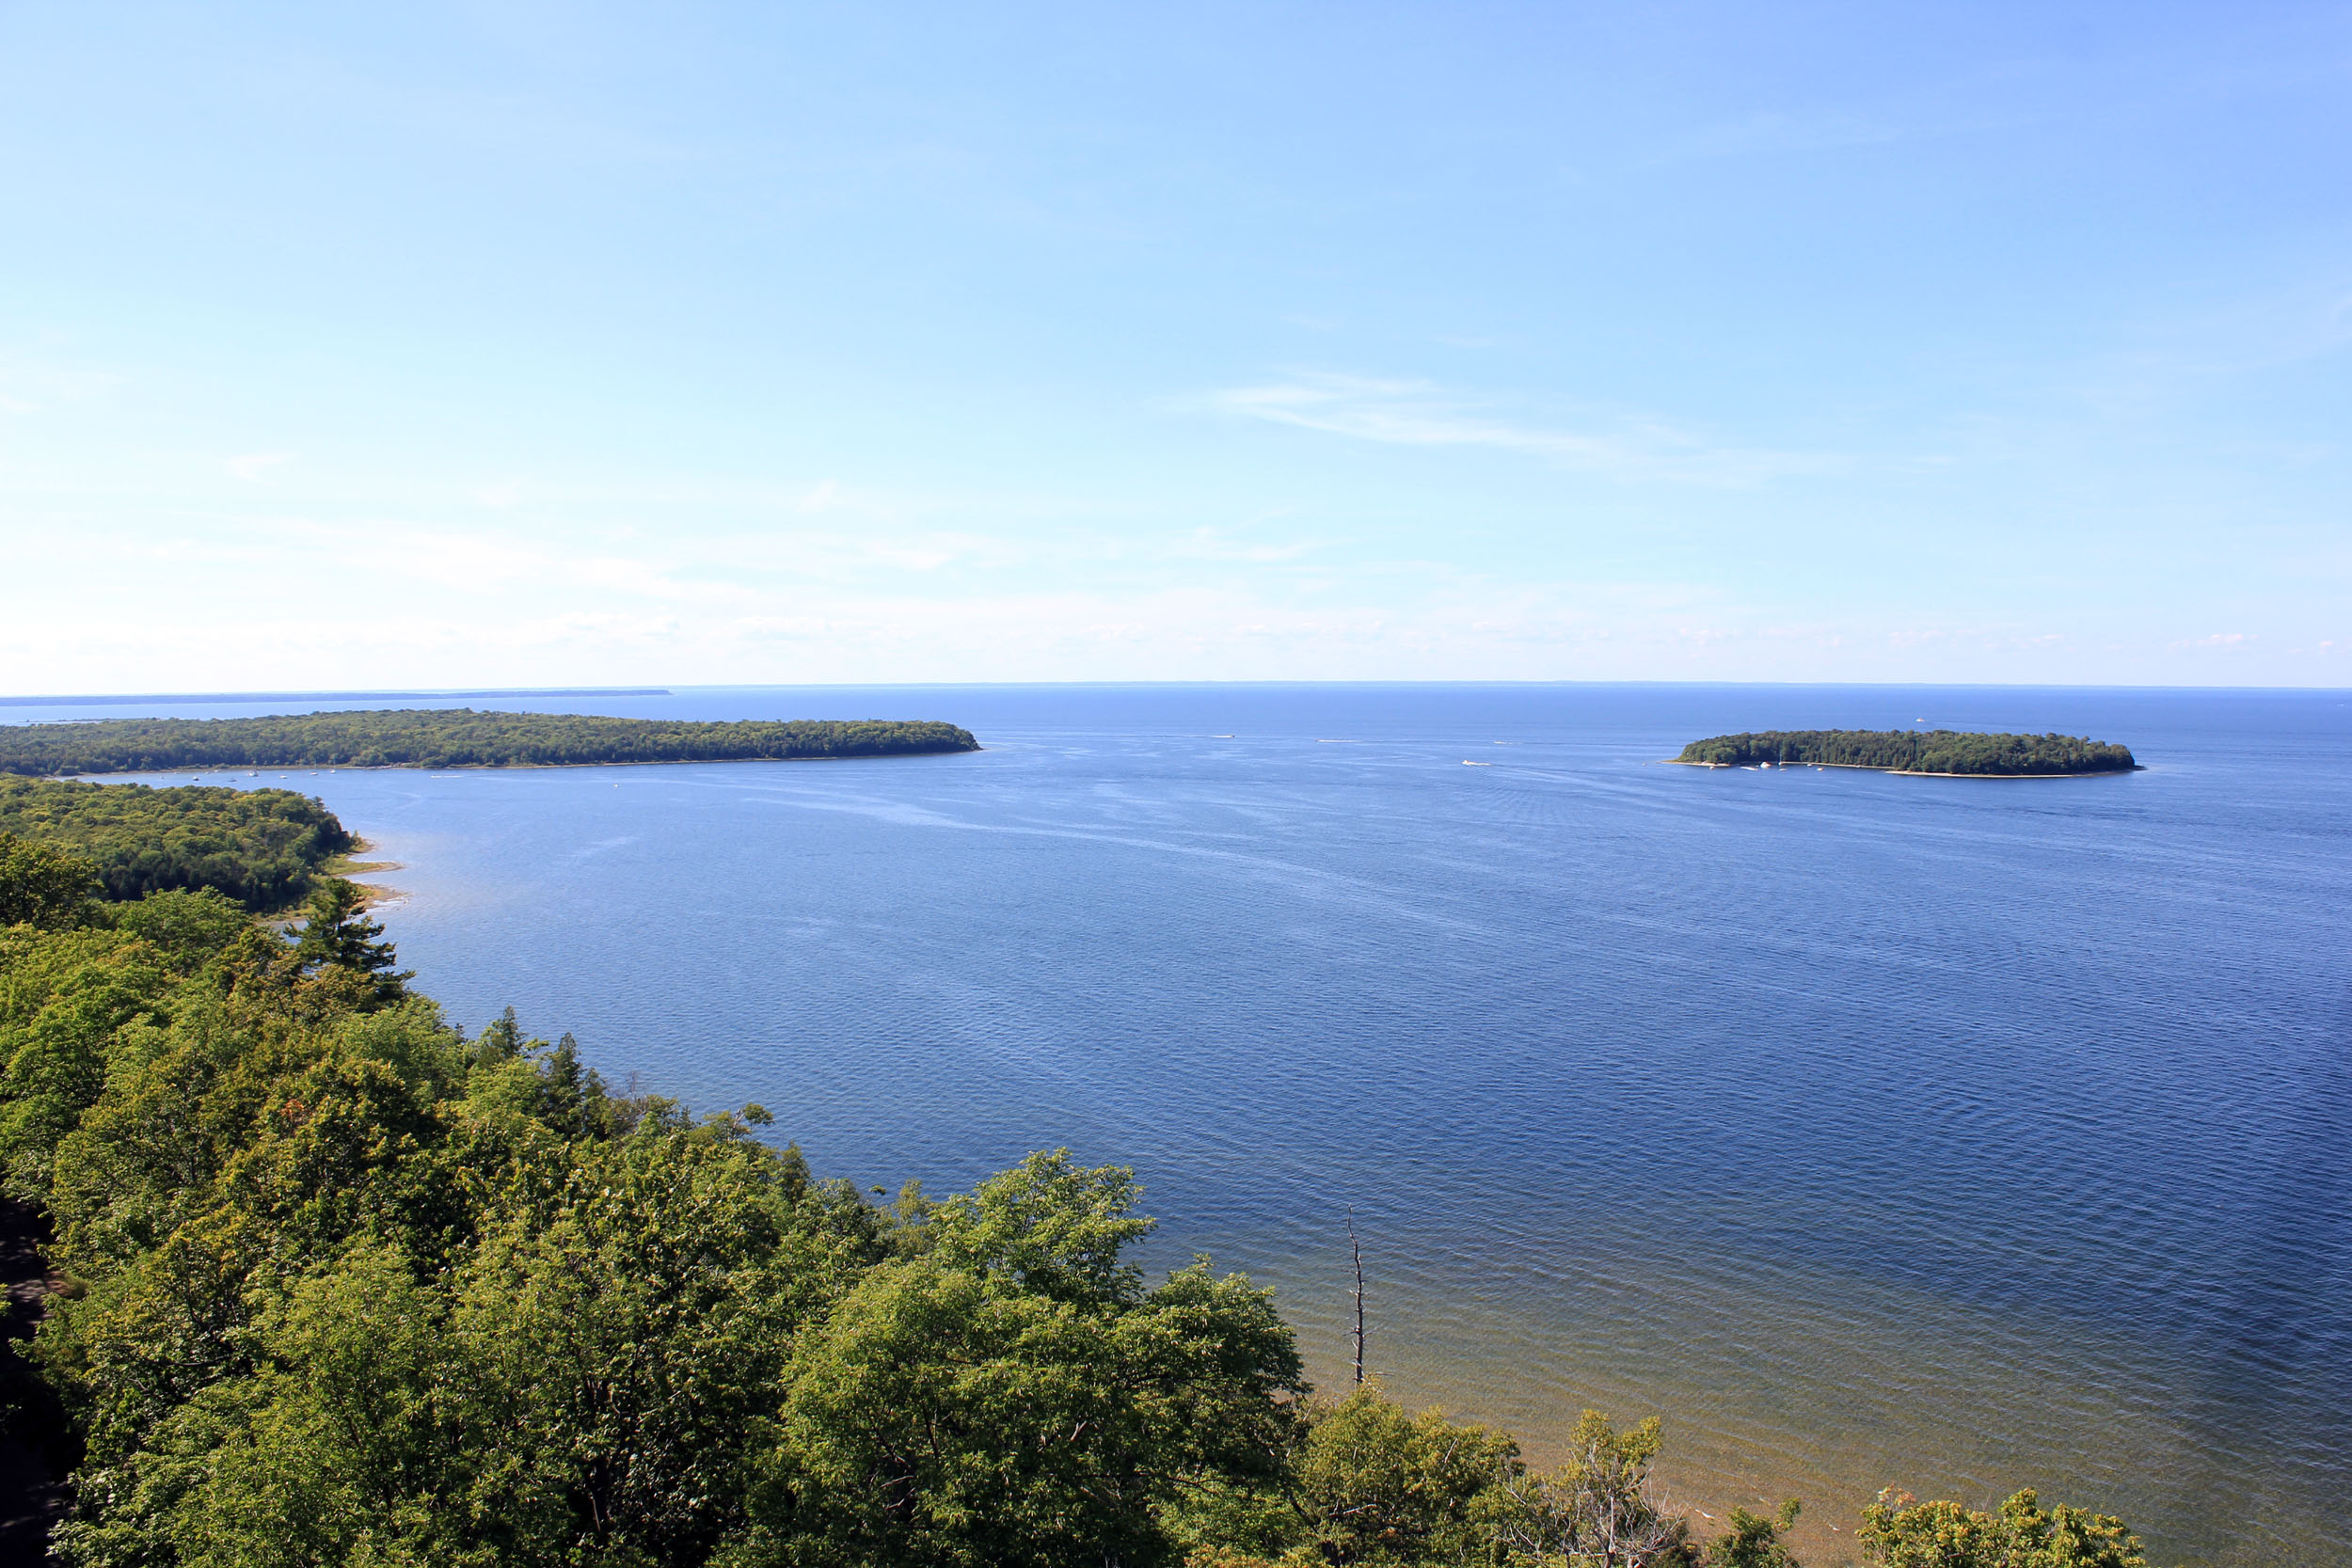 View from the top of the tower, Peninsula State Park